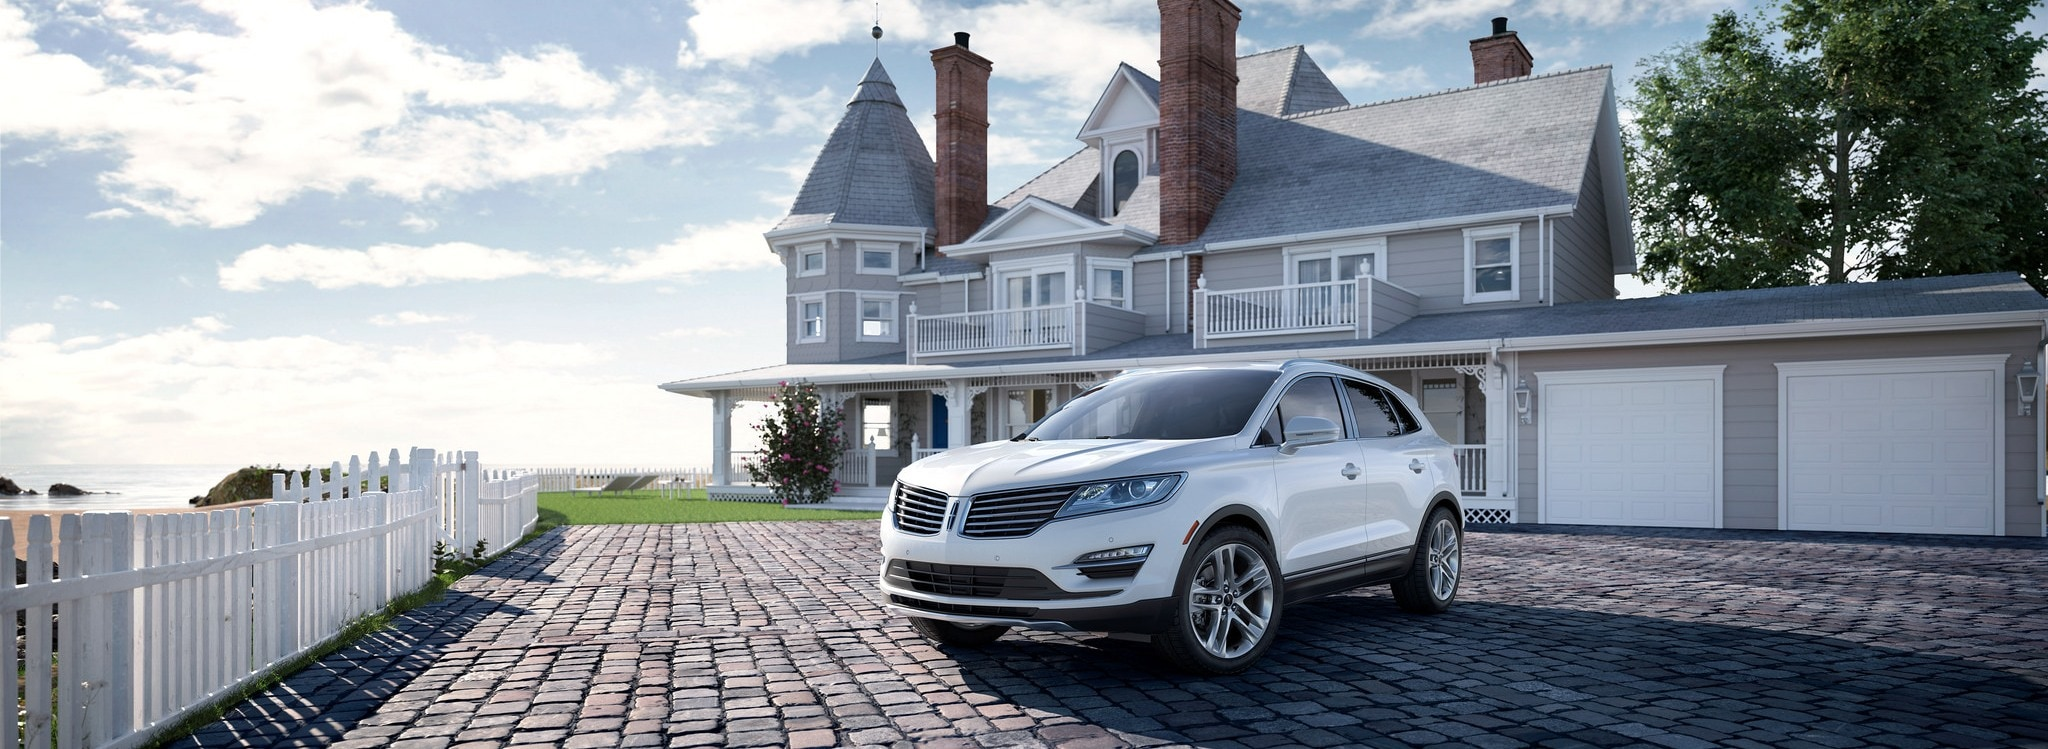 Why Buy the 2017 Lincoln MKC